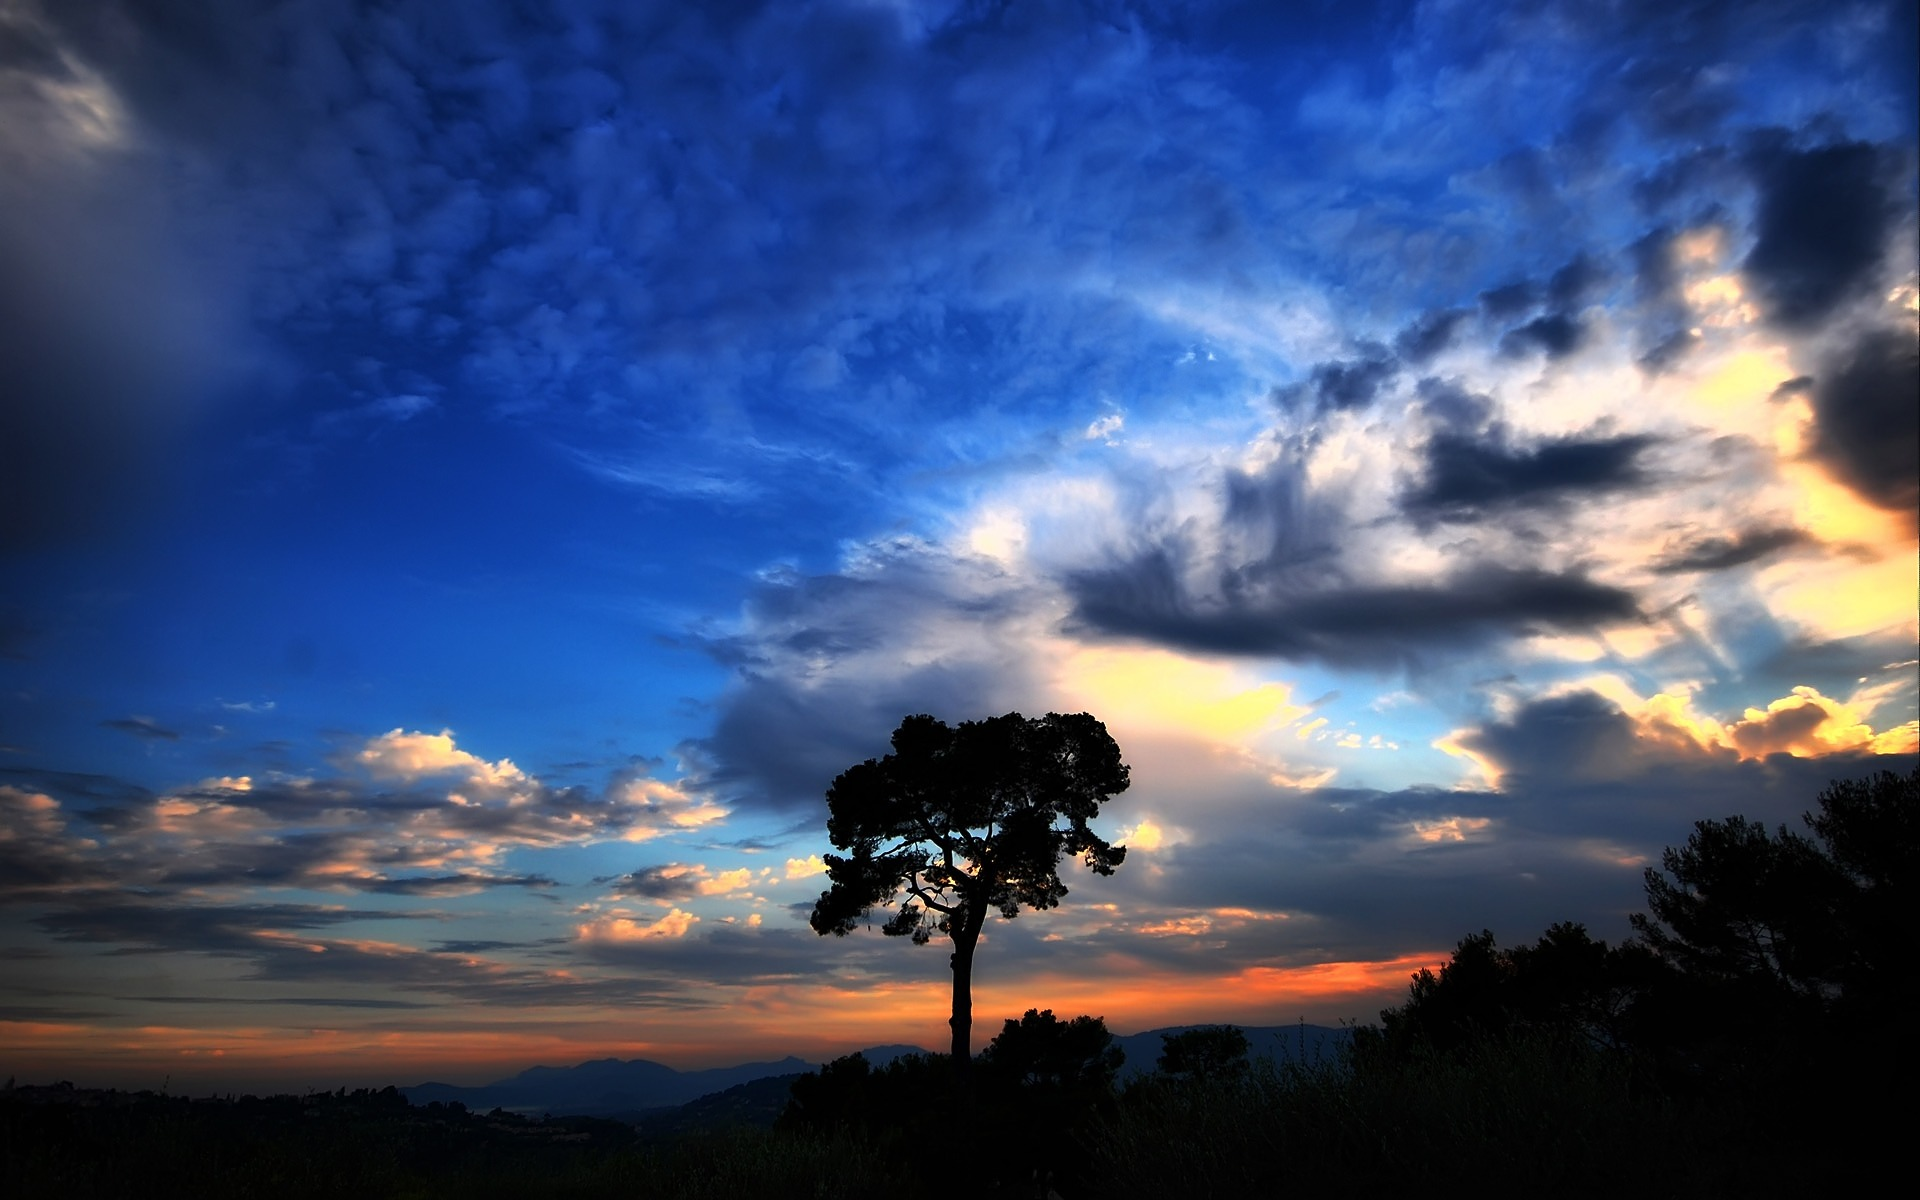 beautiful sky wallpaper landscape nature wallpapers in jpg format